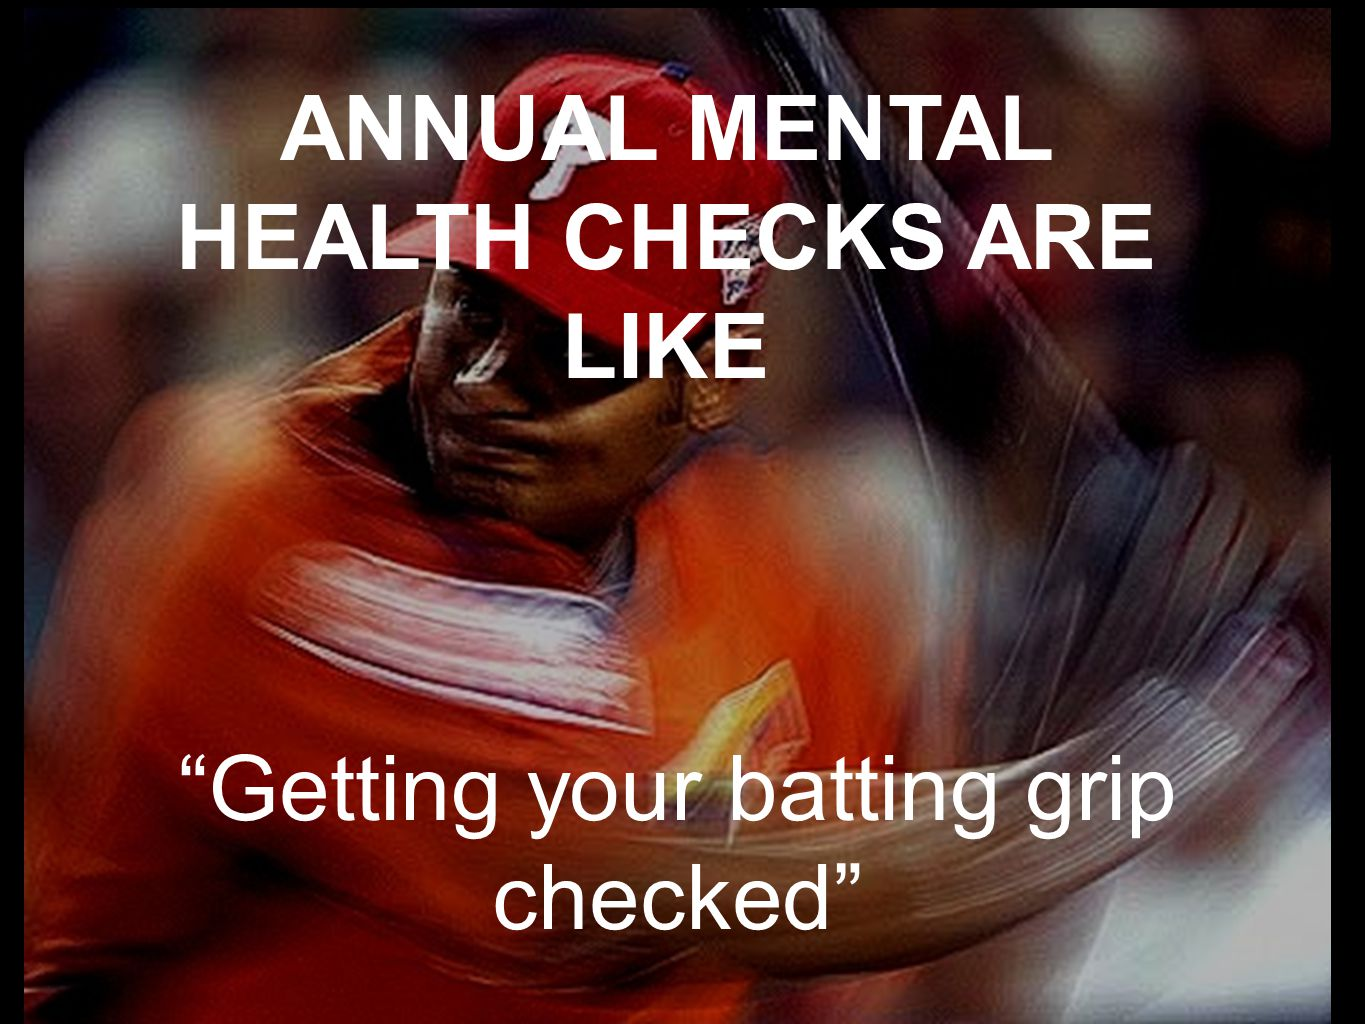 ANNUAL MENTAL HEALTH CHECKS ARE LIKE Getting your batting grip checked